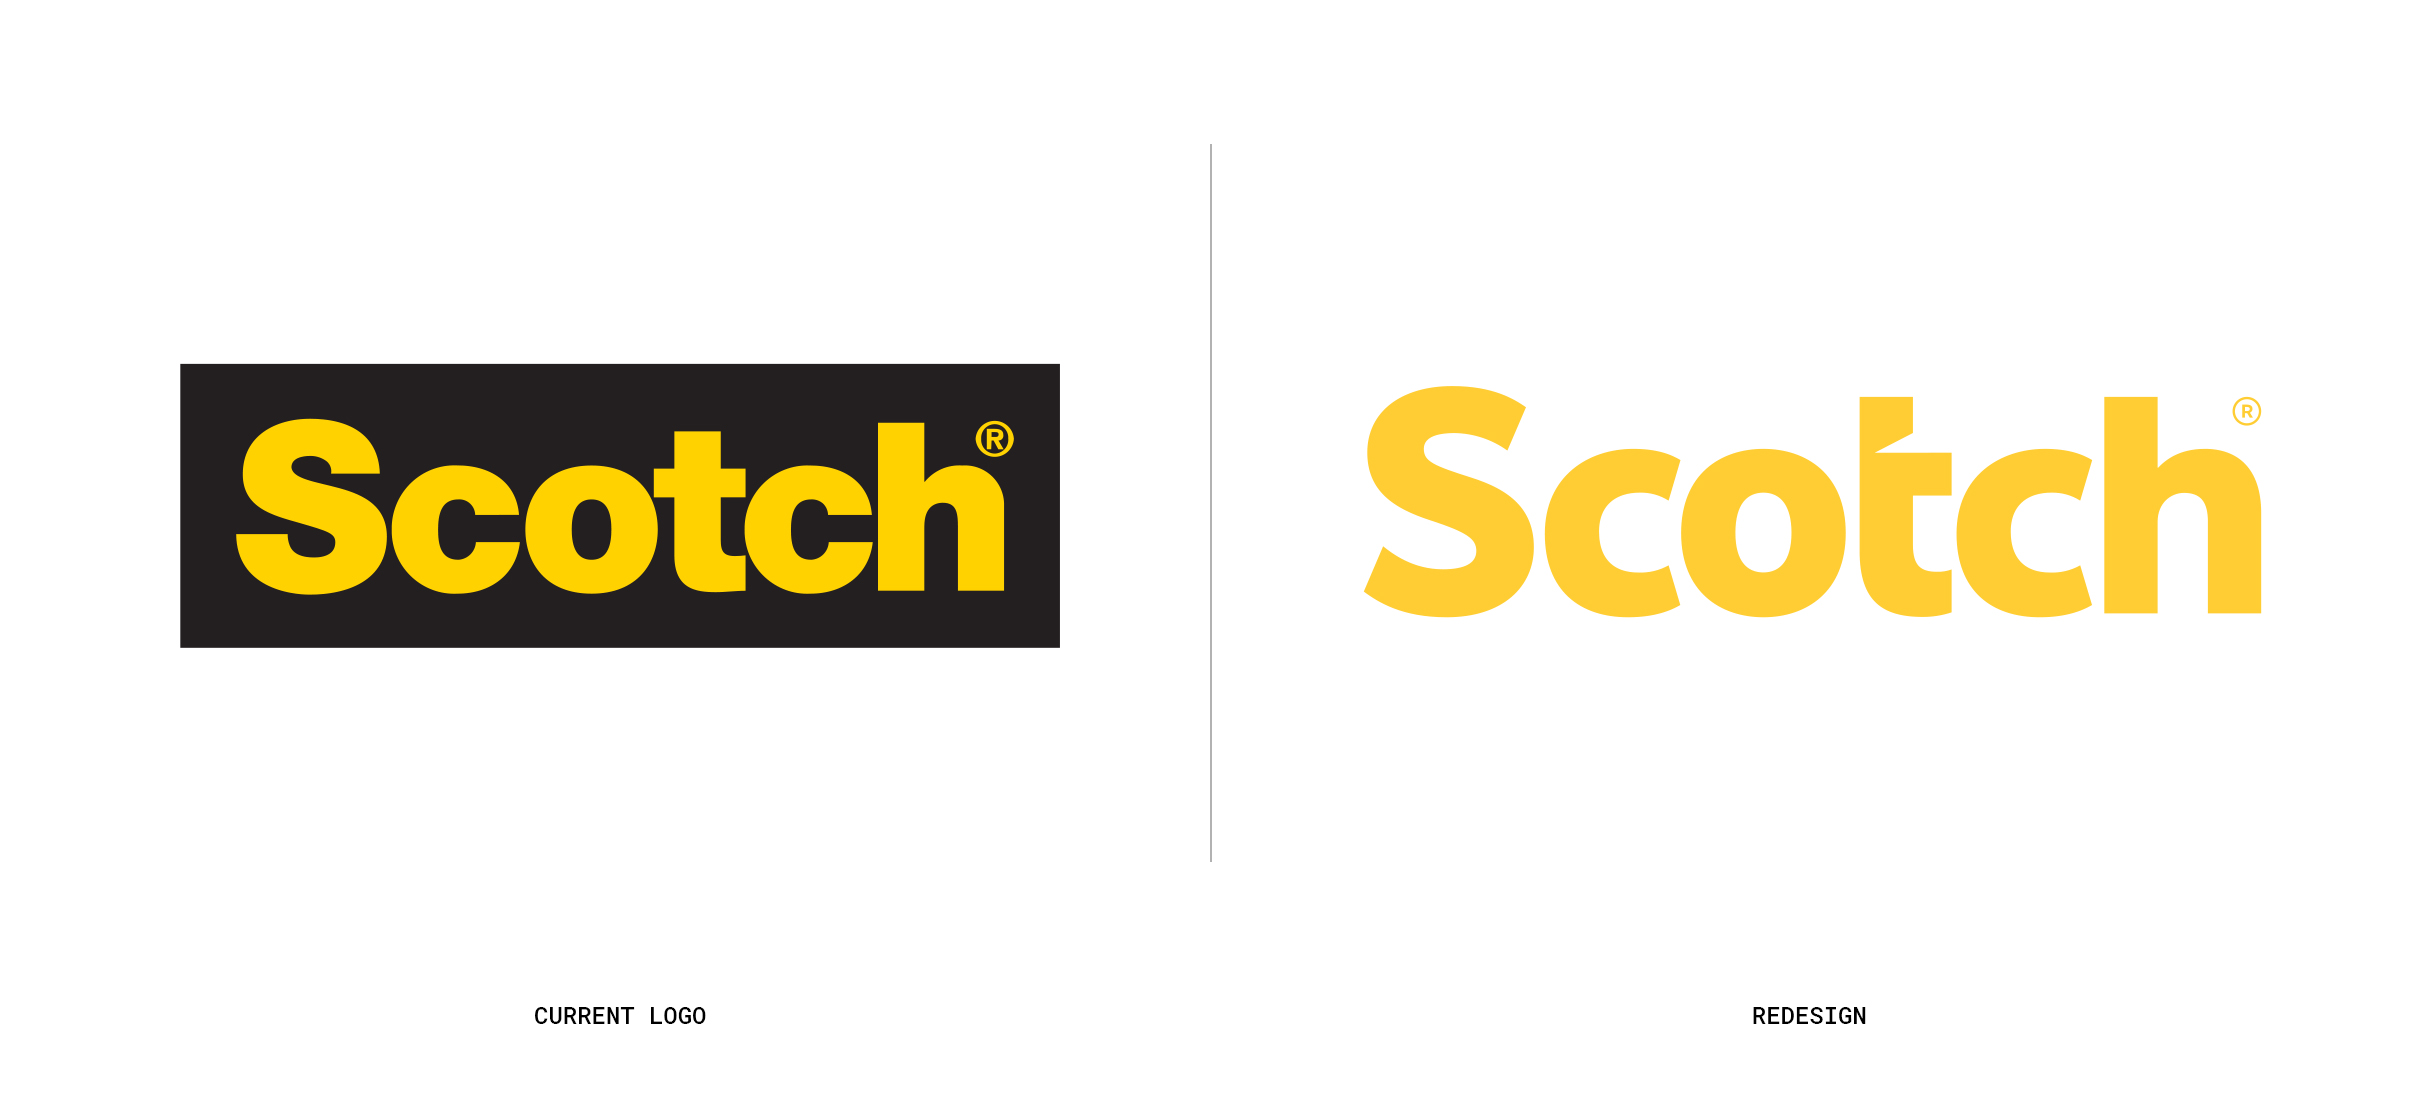 The old Scotch logo compared with the newly redesigned logo